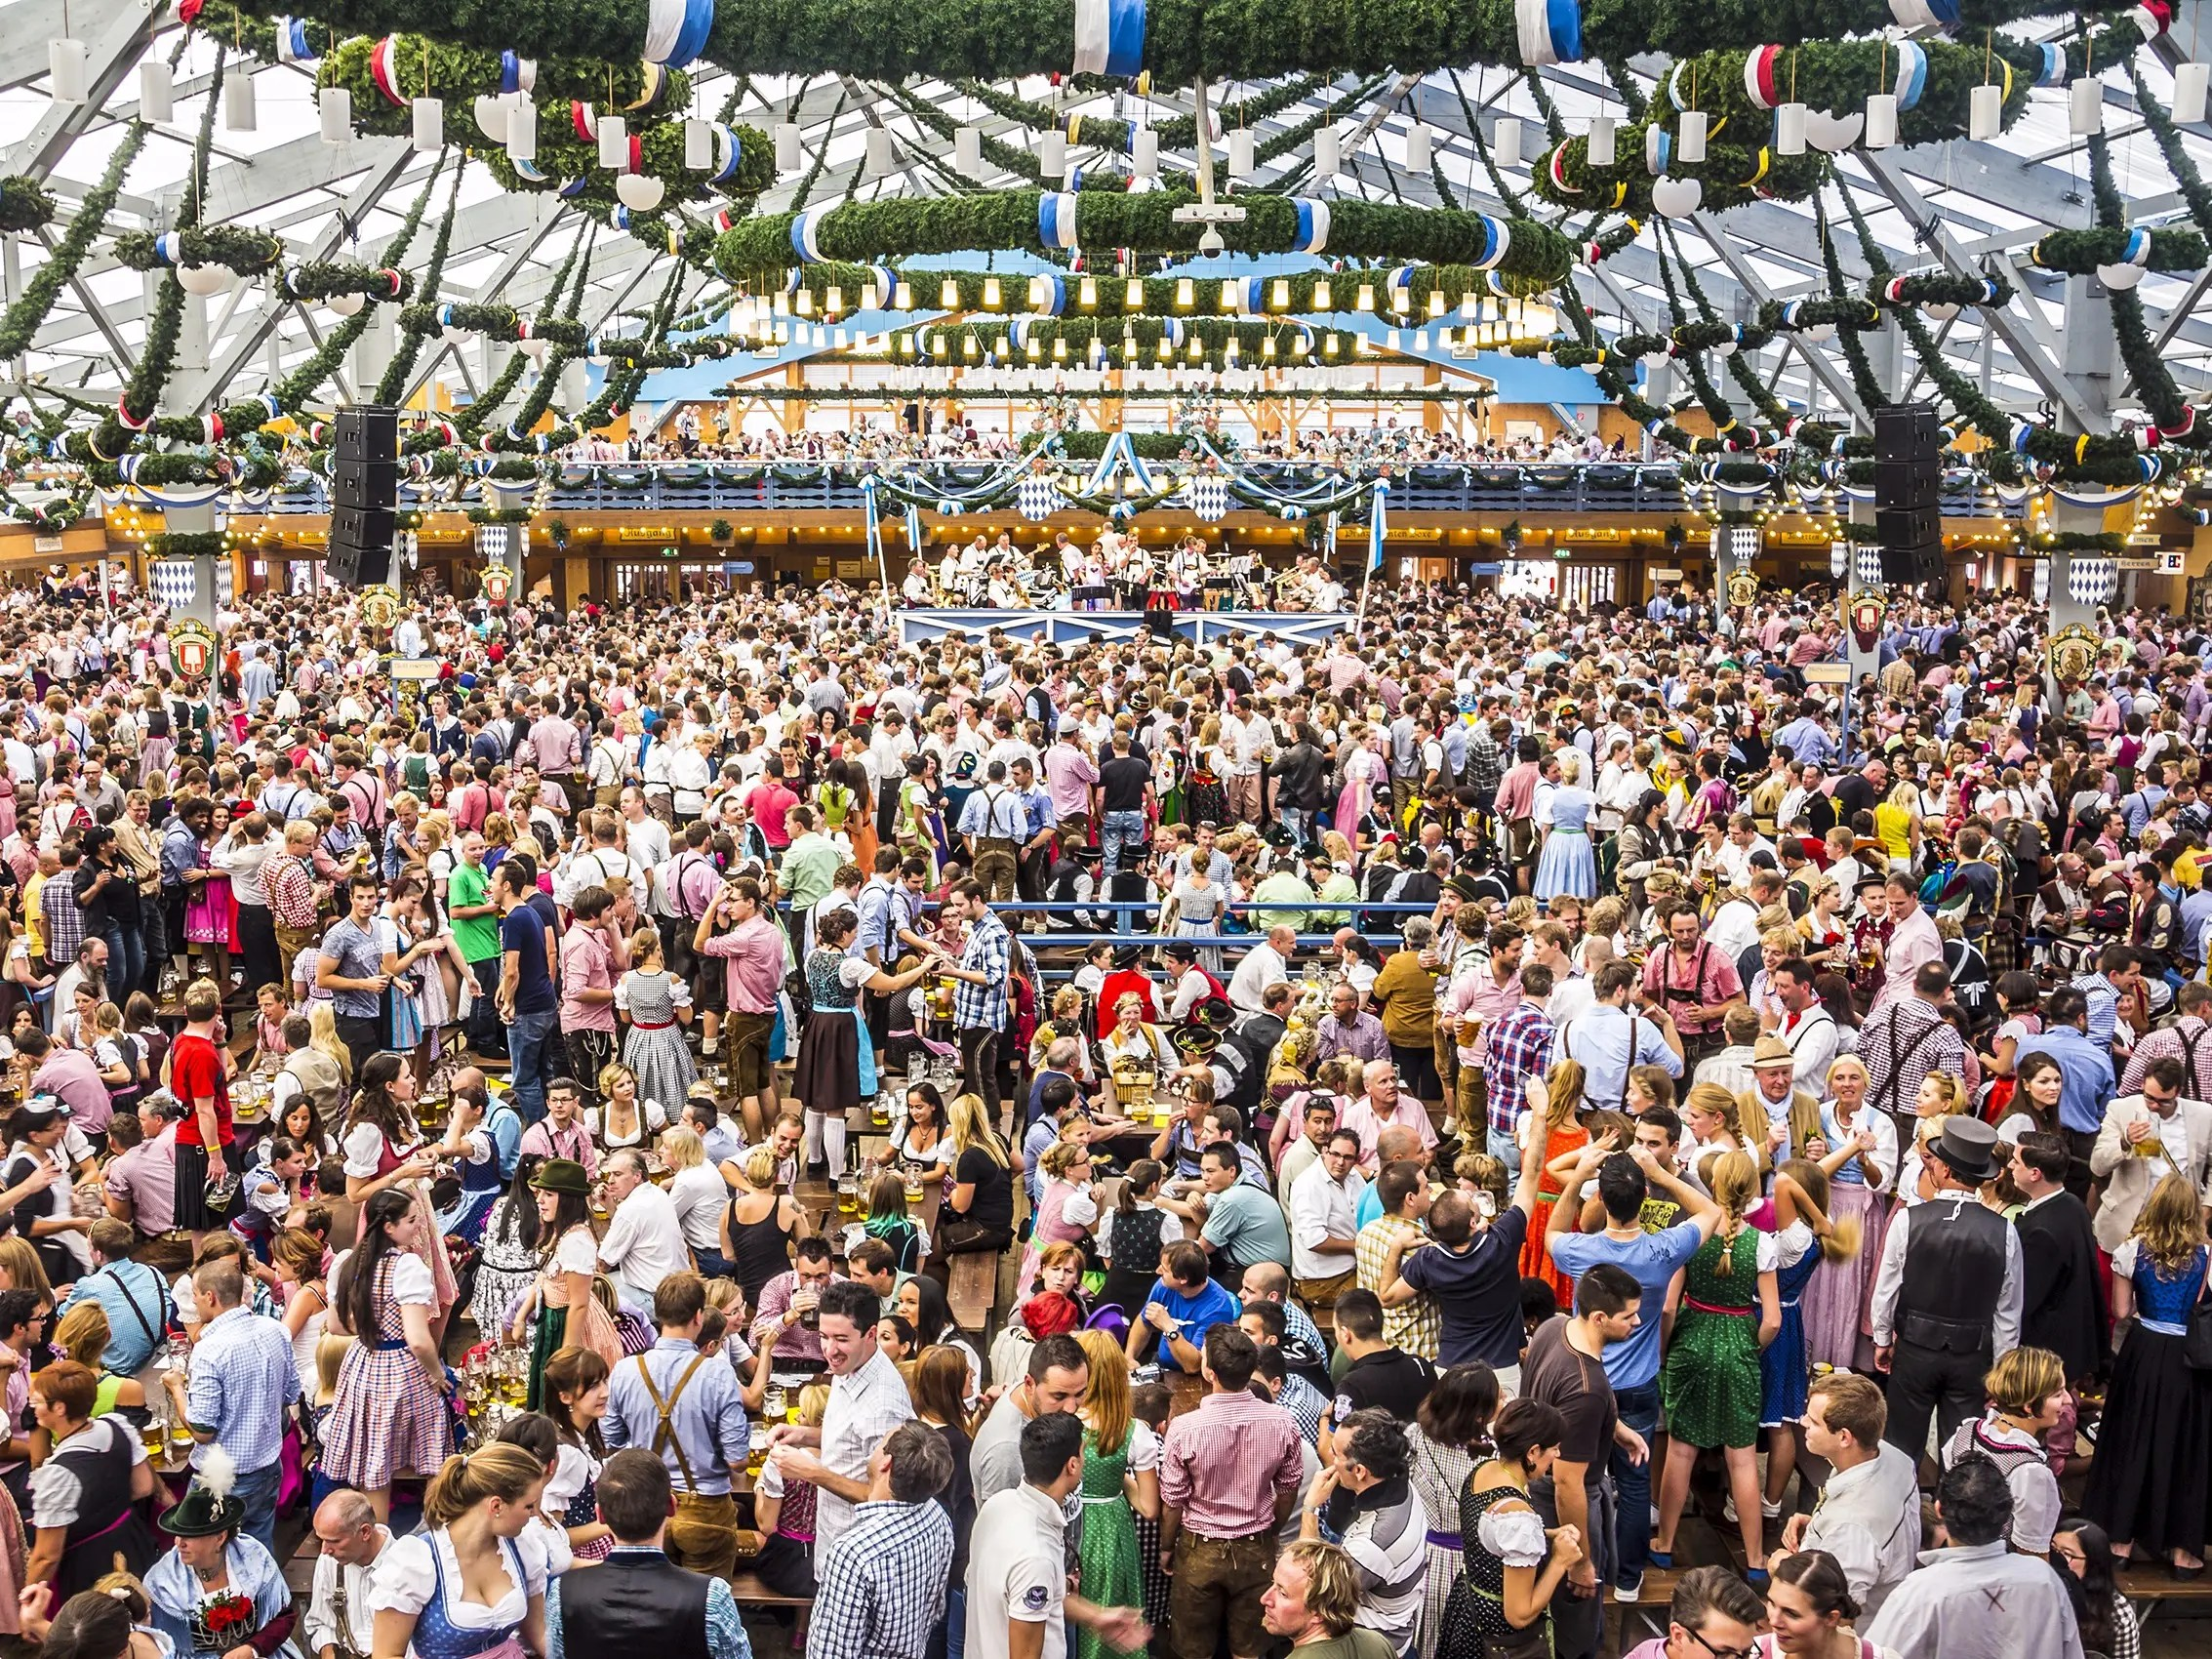 A guide to the Oktoberfest tents   Business Insider Oktoberfest  inside of tent  Munich  Germany